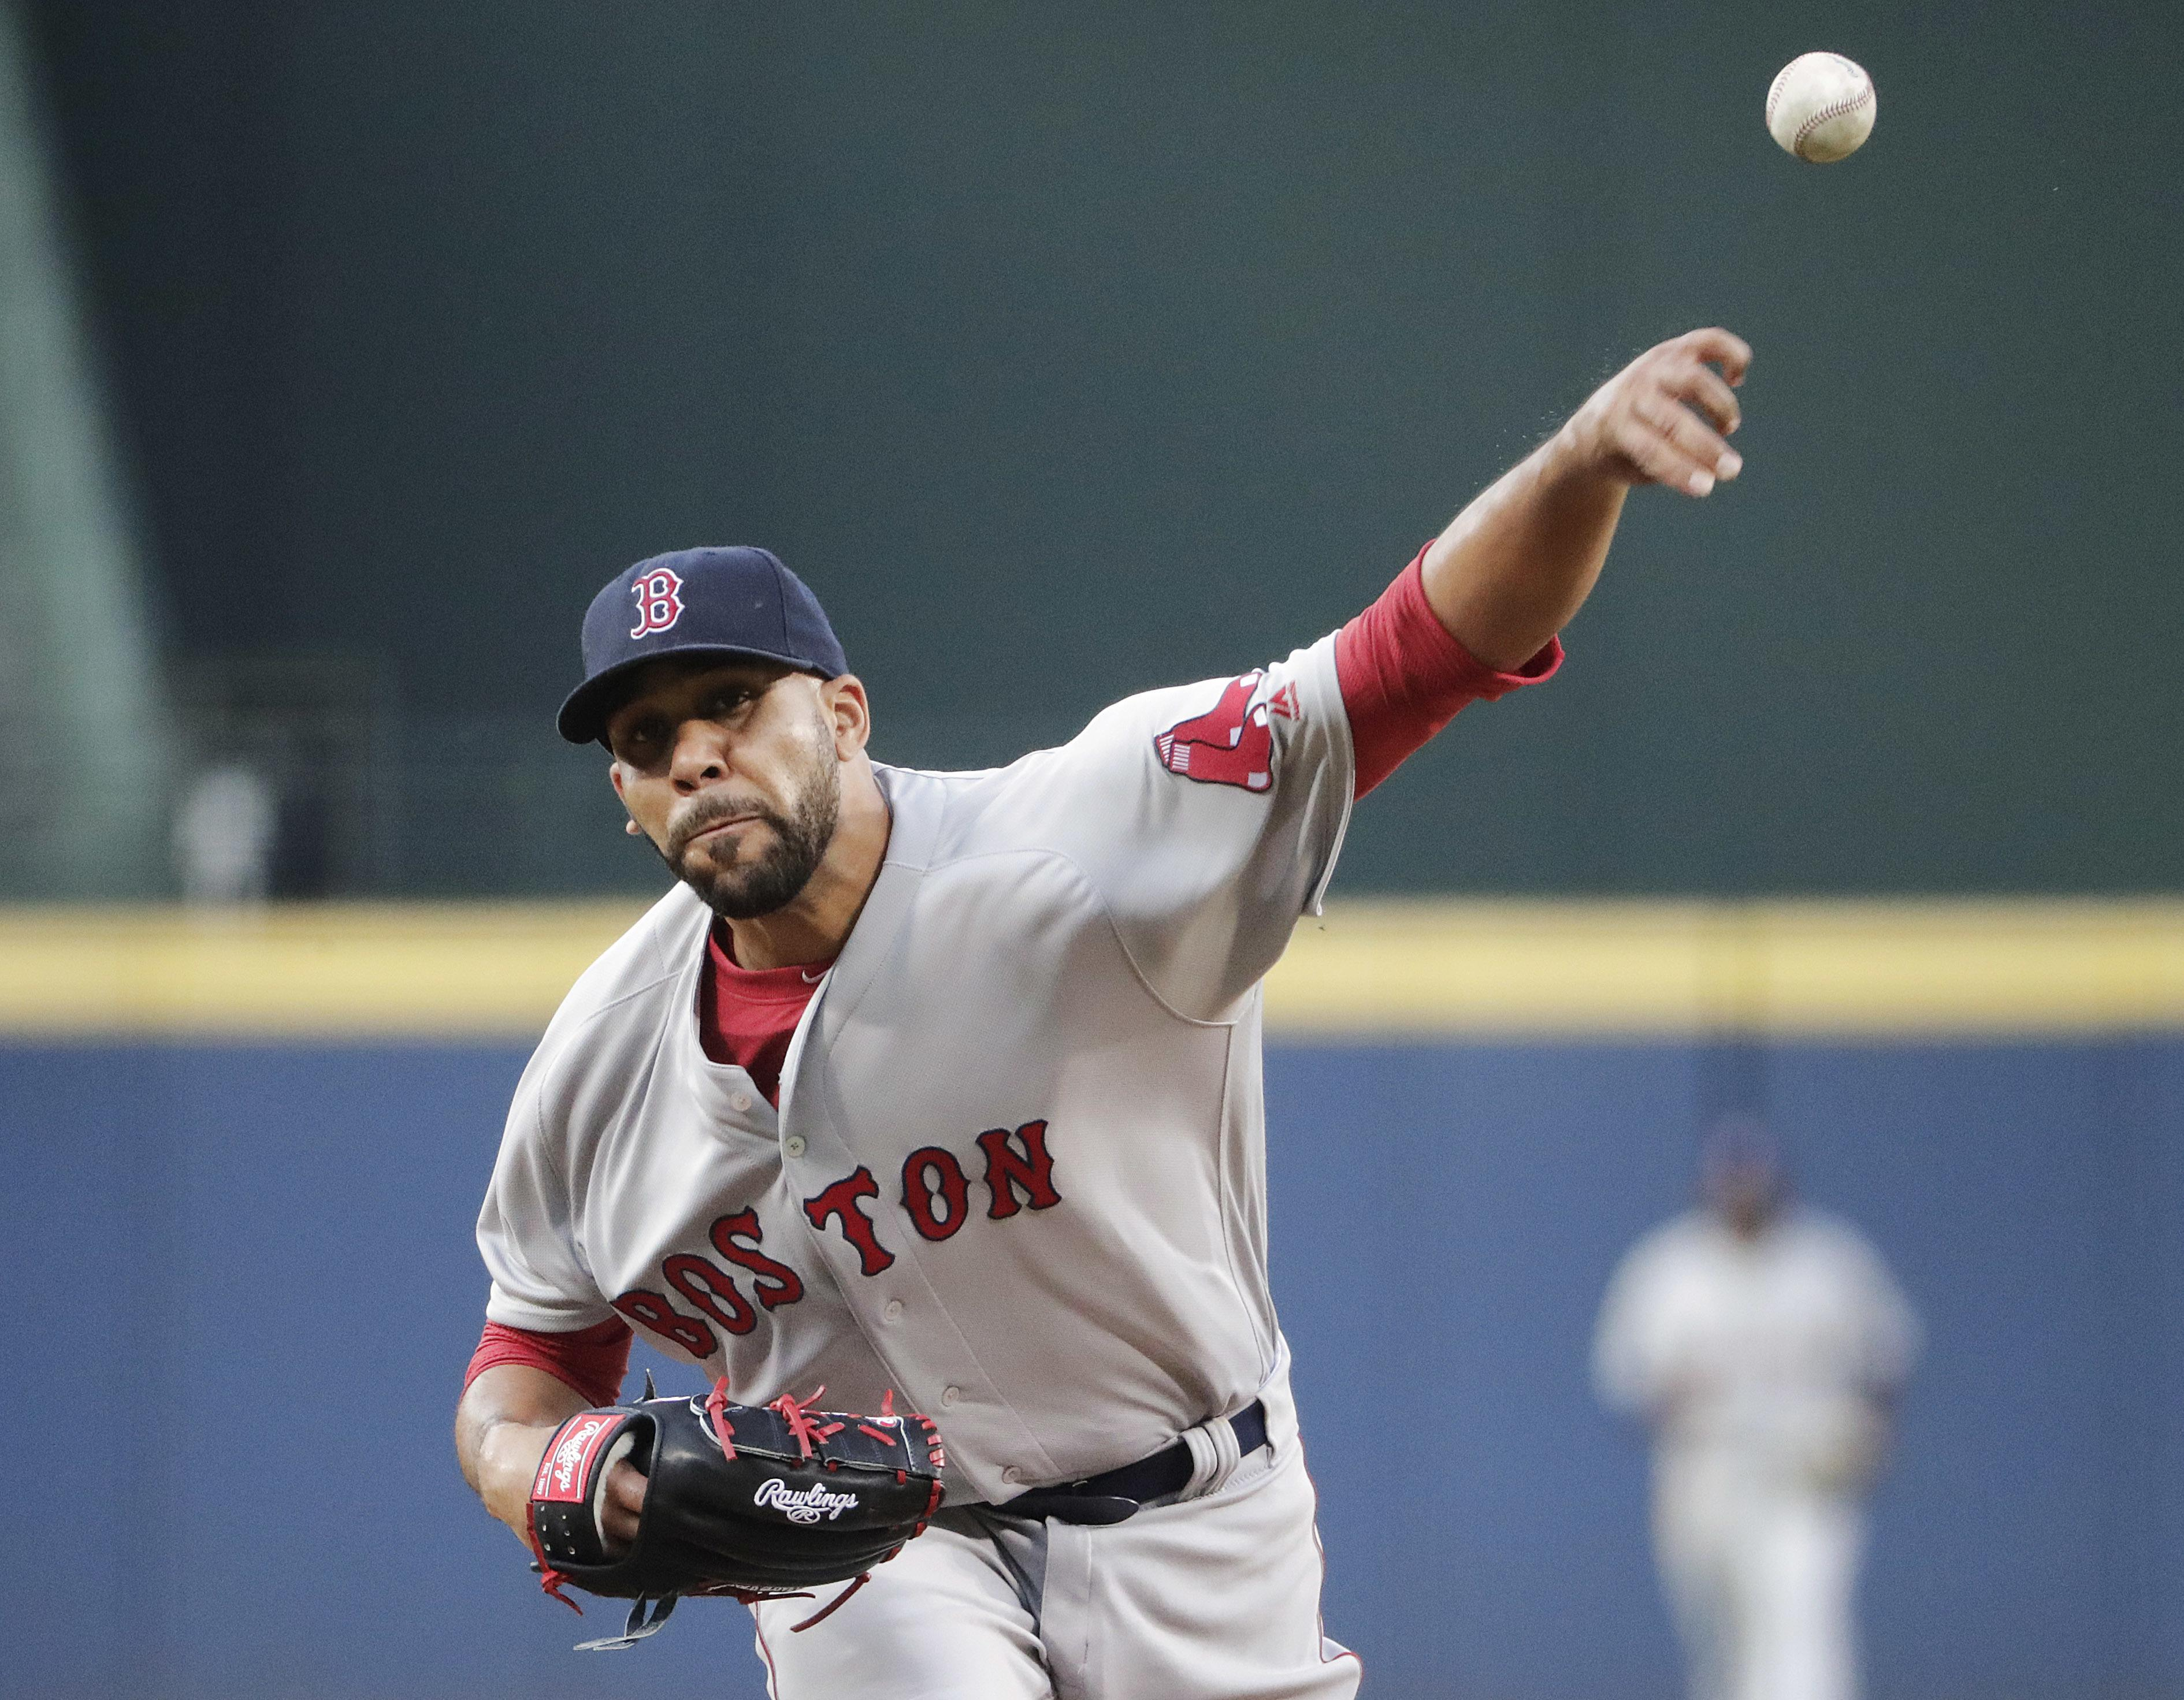 Red_sox_preview_baseball_09698